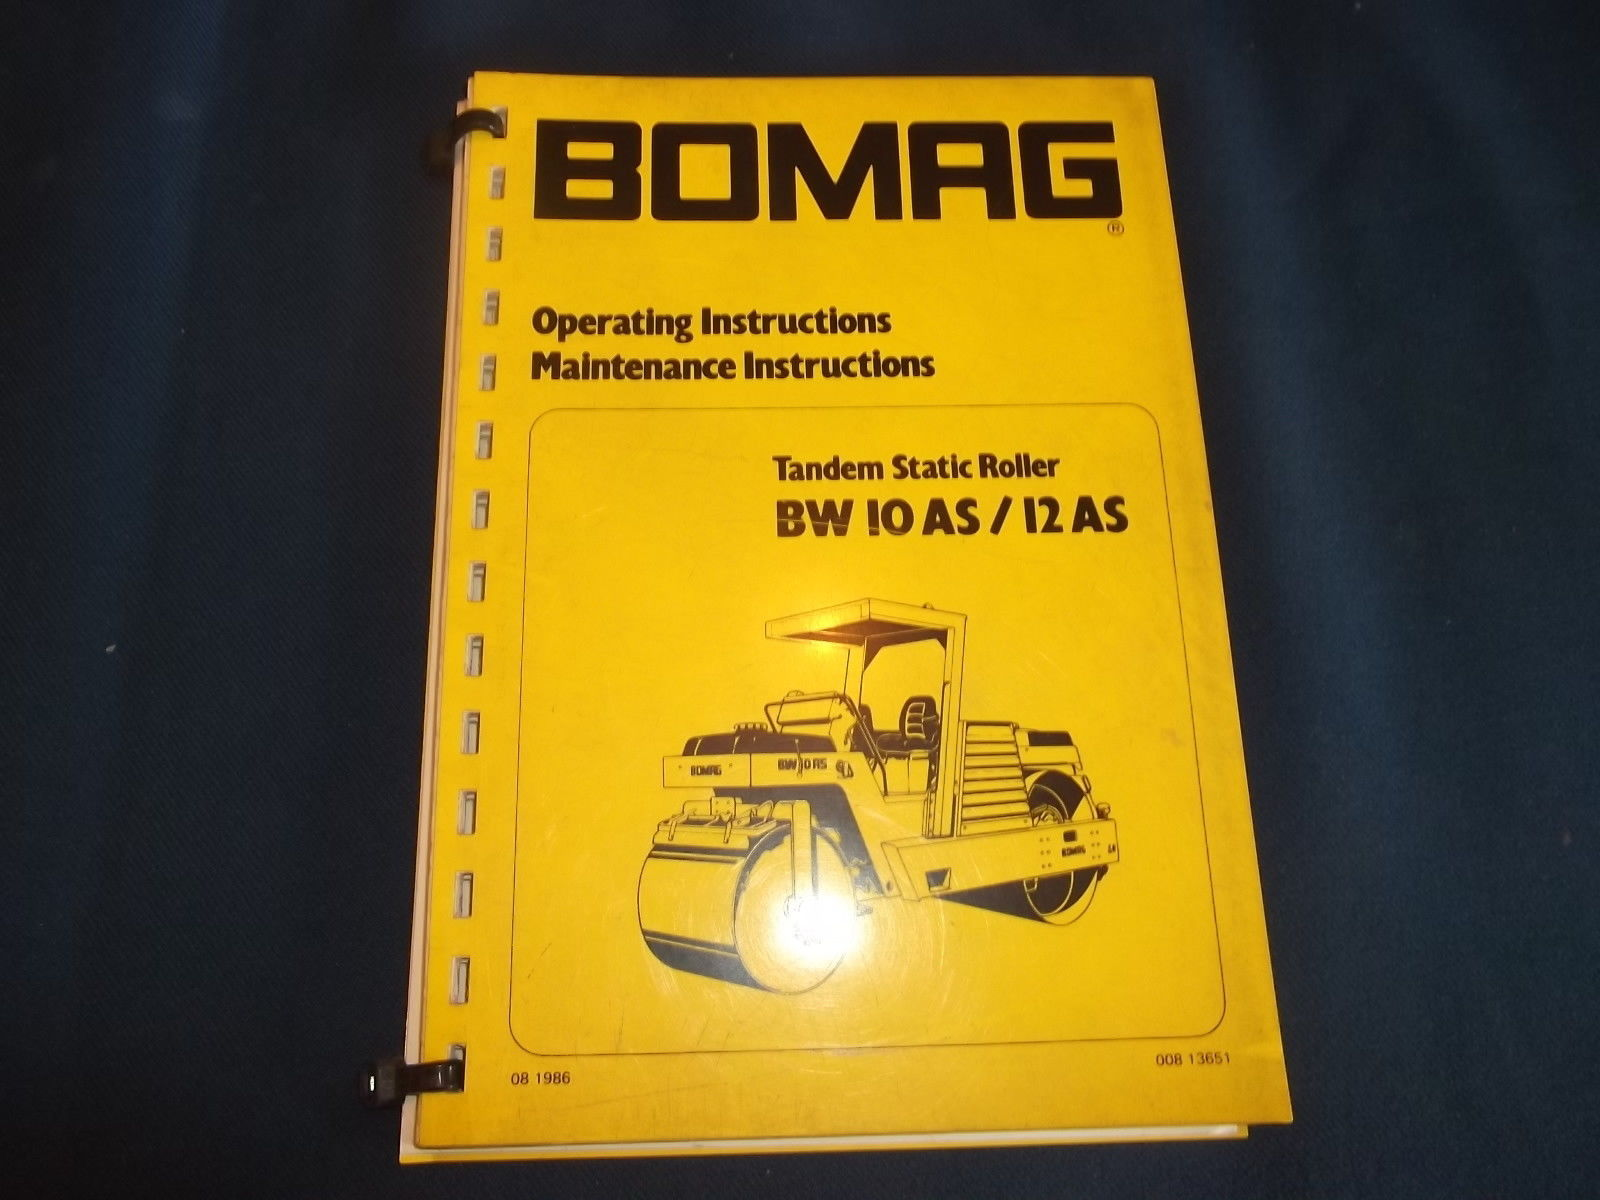 Repair manual Bomag Asphalt Manager Tandem Roller is a catalog of dealer  documentation, which contains manuals on repair and maintenance,  description of ...